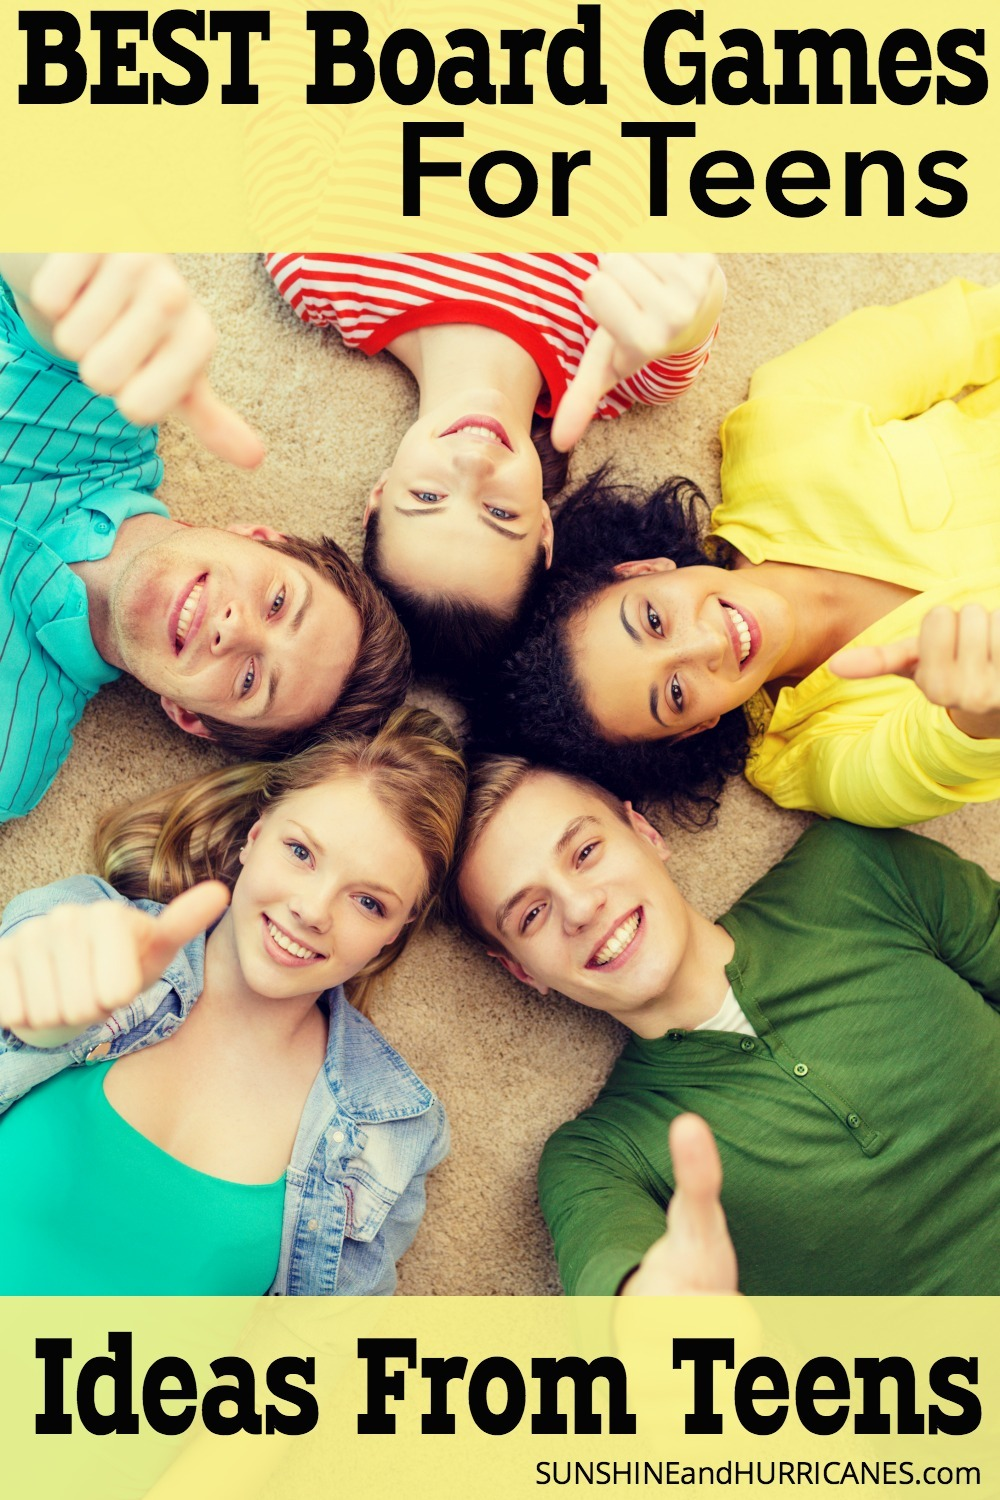 Looking for a way to connect with your teen? We forget sometimes that teens are still kids and they do enjoy spending time with their family if it's fun. Family game night is one of the best ways to bring everyone together and with these suggestions for board games for teens from teens, you'll already be set up for success. SunshineandHurricanes.com